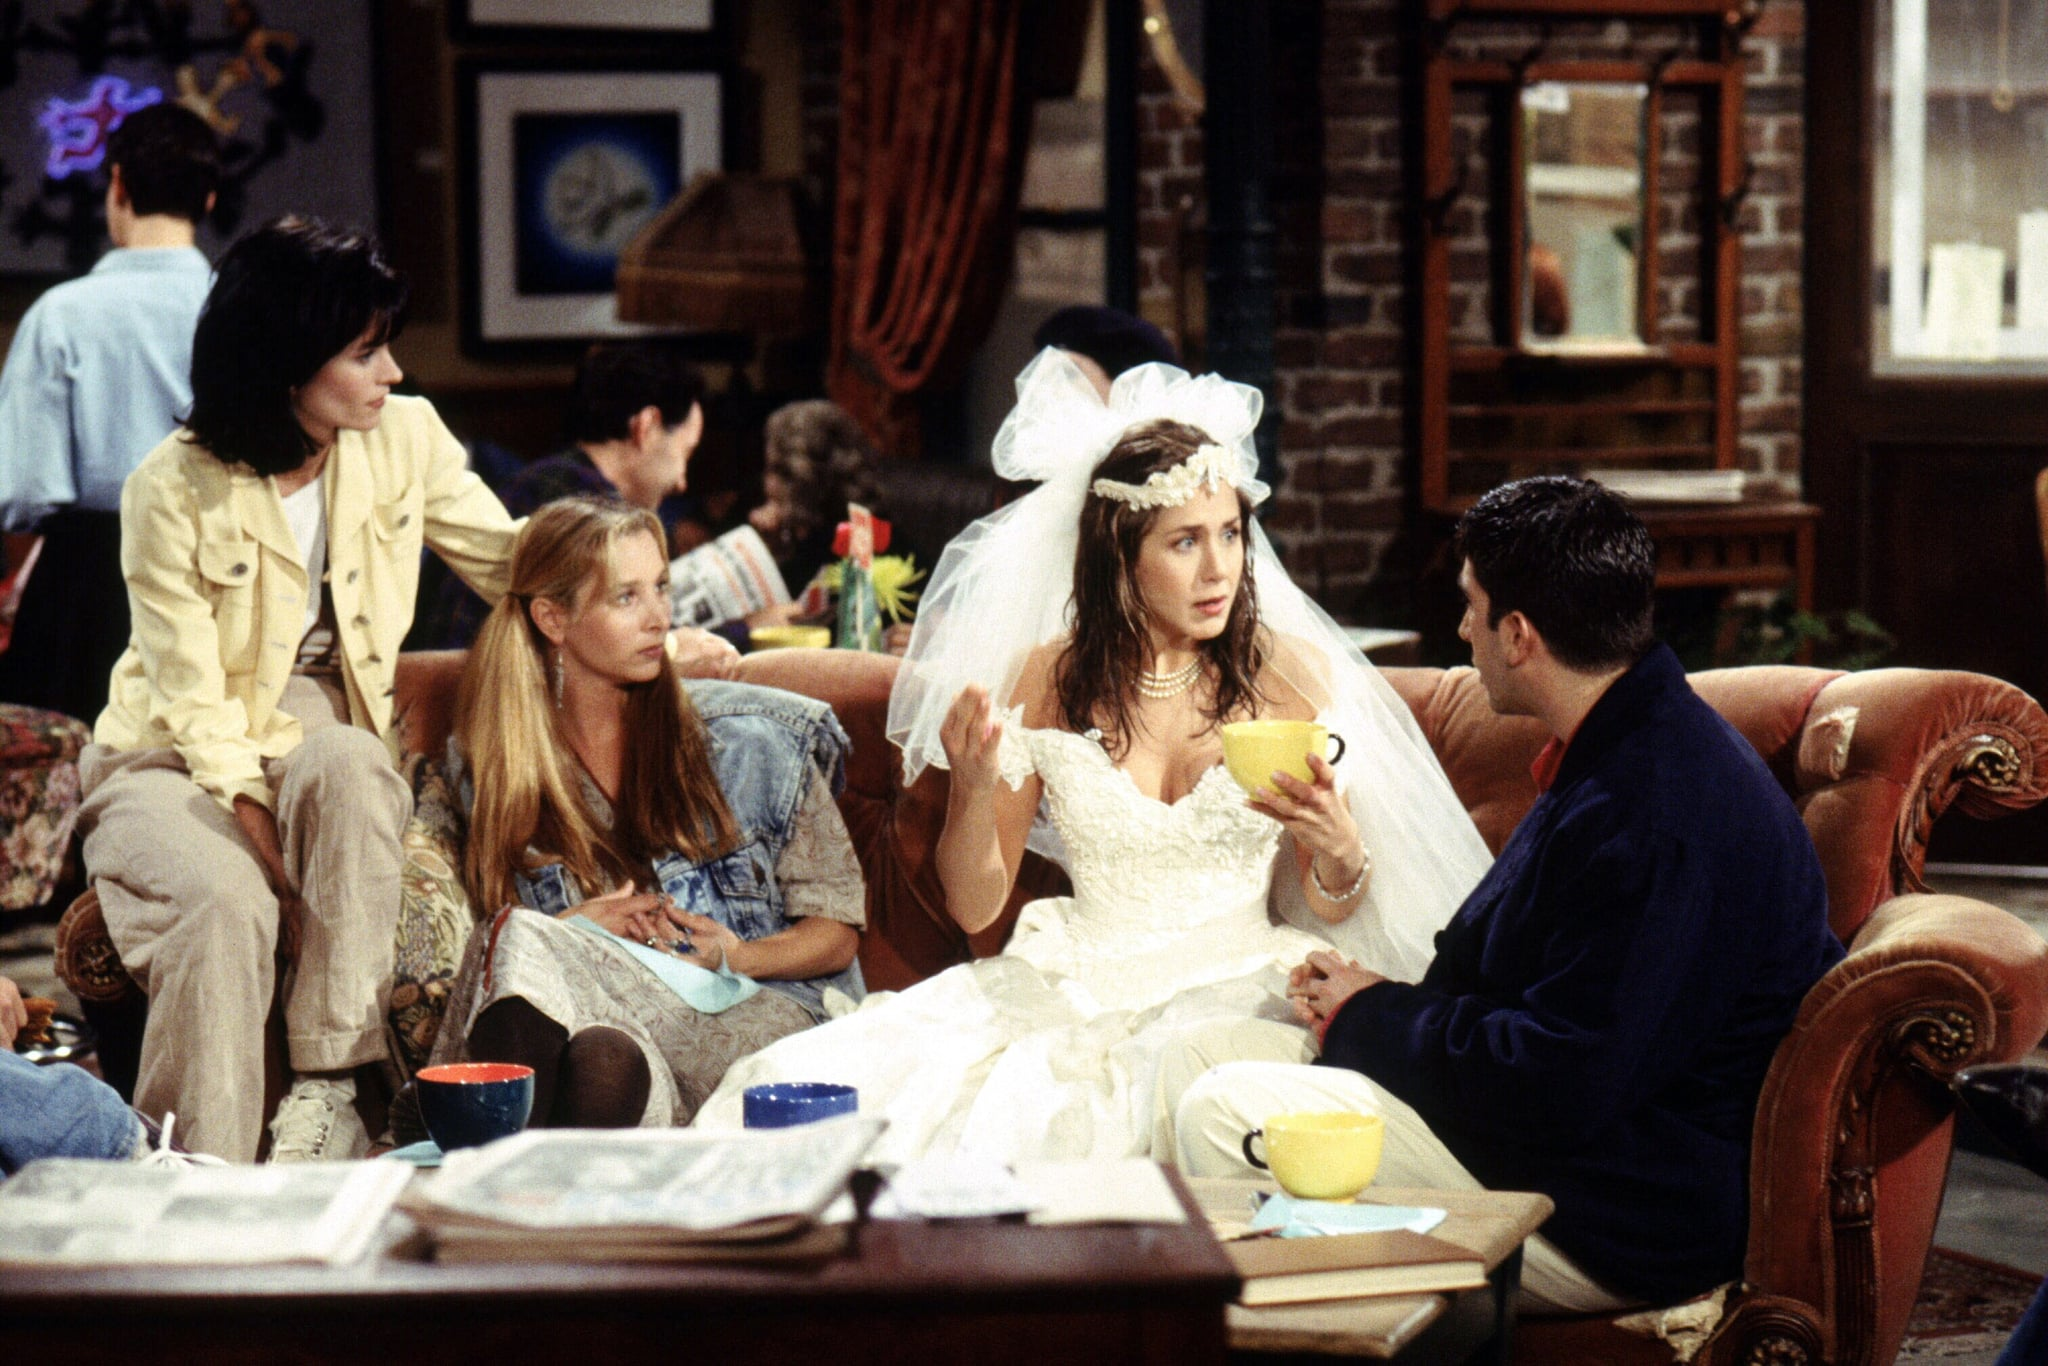 FRIENDS, (from left): Courteney Cox, Lisa Kudrow, Jennifer Aniston, David Schwimmer (back to camera), 'The One Where Monica Gets A Roommate', (Season 1, ep. 101, aired Sept. 22, 1994), 1994-2004. Warner Bros. / Courtesy: Everett Collection